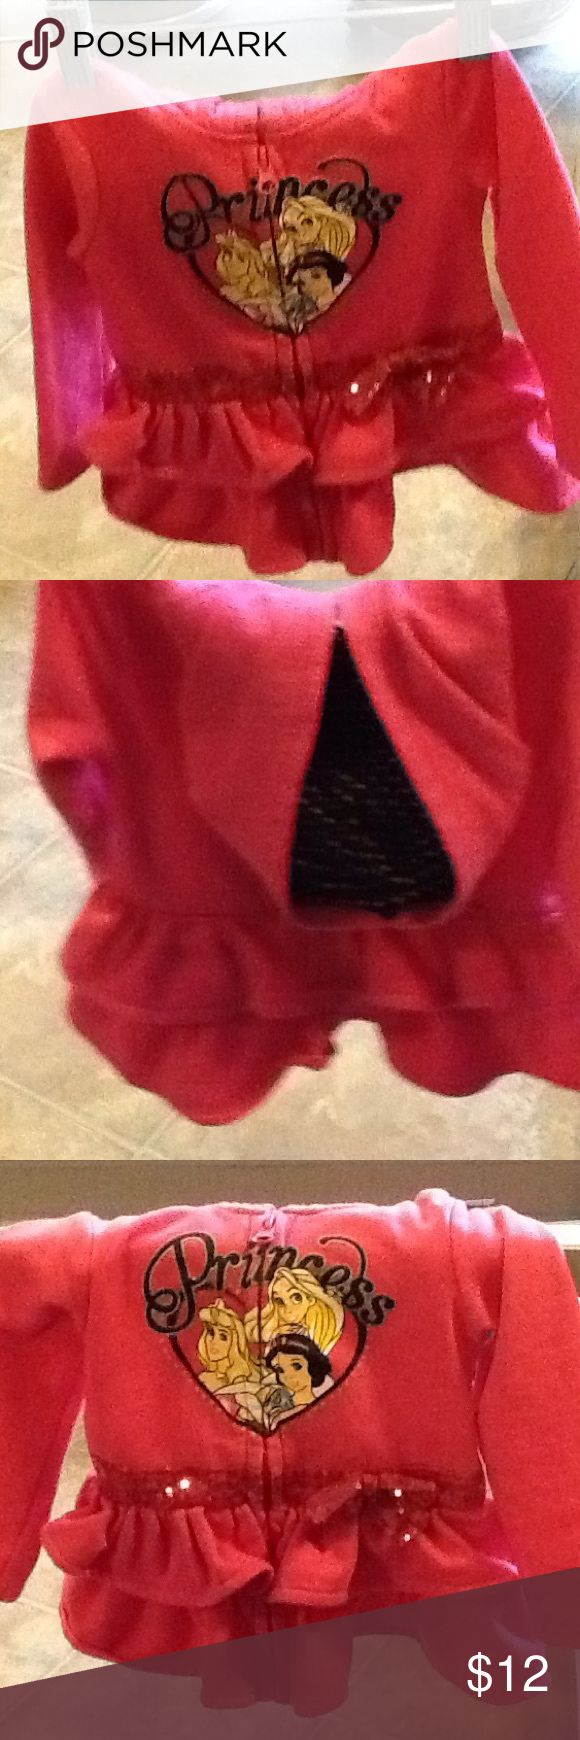 """Pink toddler Disney jacket that say """"Priness"""". This pink """"Princess"""" jacket from Disney has characters in the front. The hood is lined in pink and black poker dots. Disney Shirts & Tops Sweatshirts & Hoodies"""